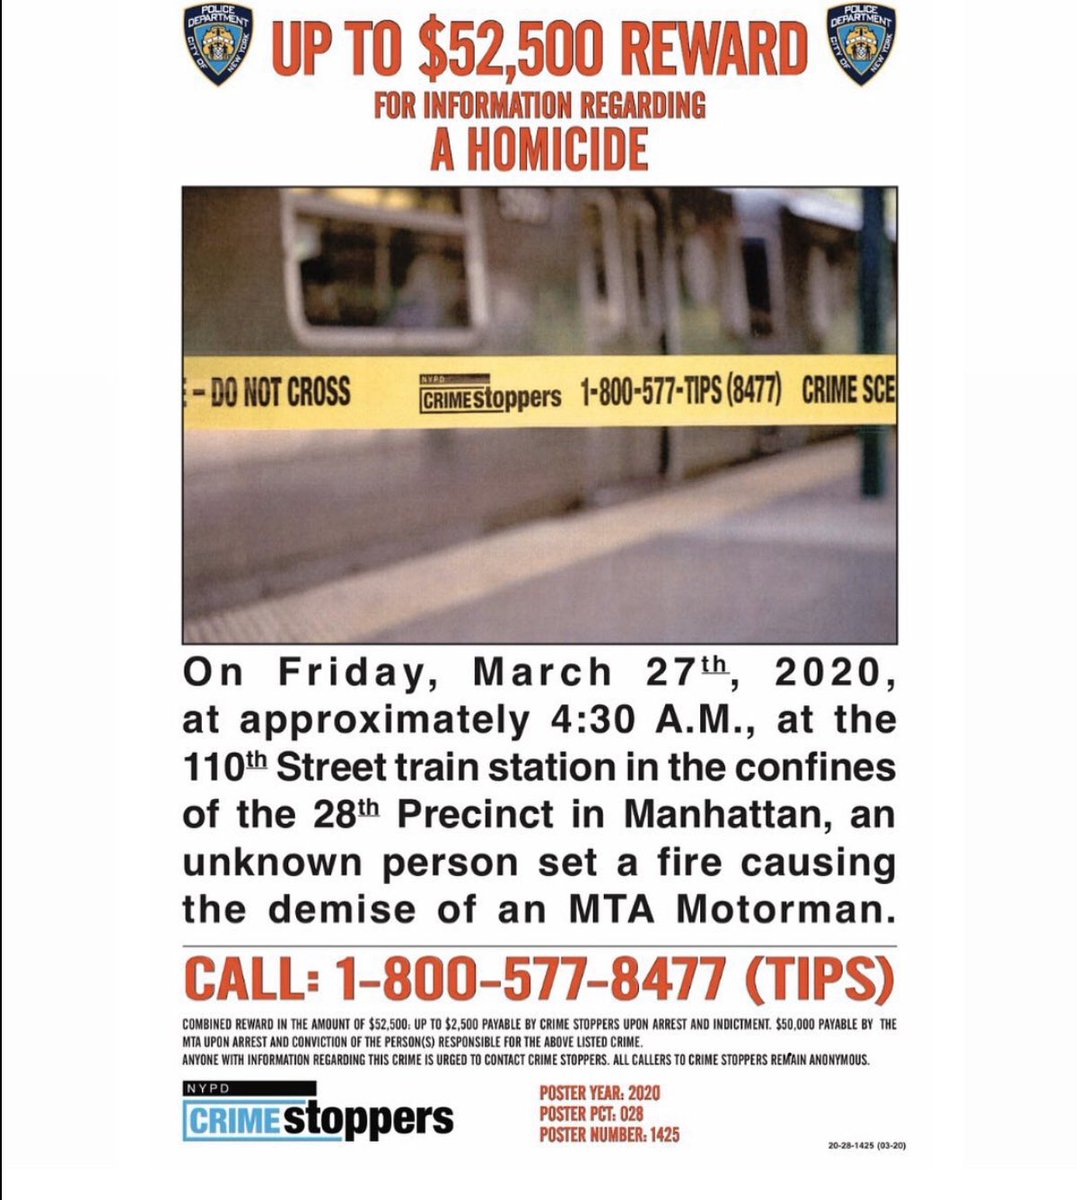 NYPD Crime Stoppers (@NYPDTips) on Twitter photo 28/03/2020 00:55:08